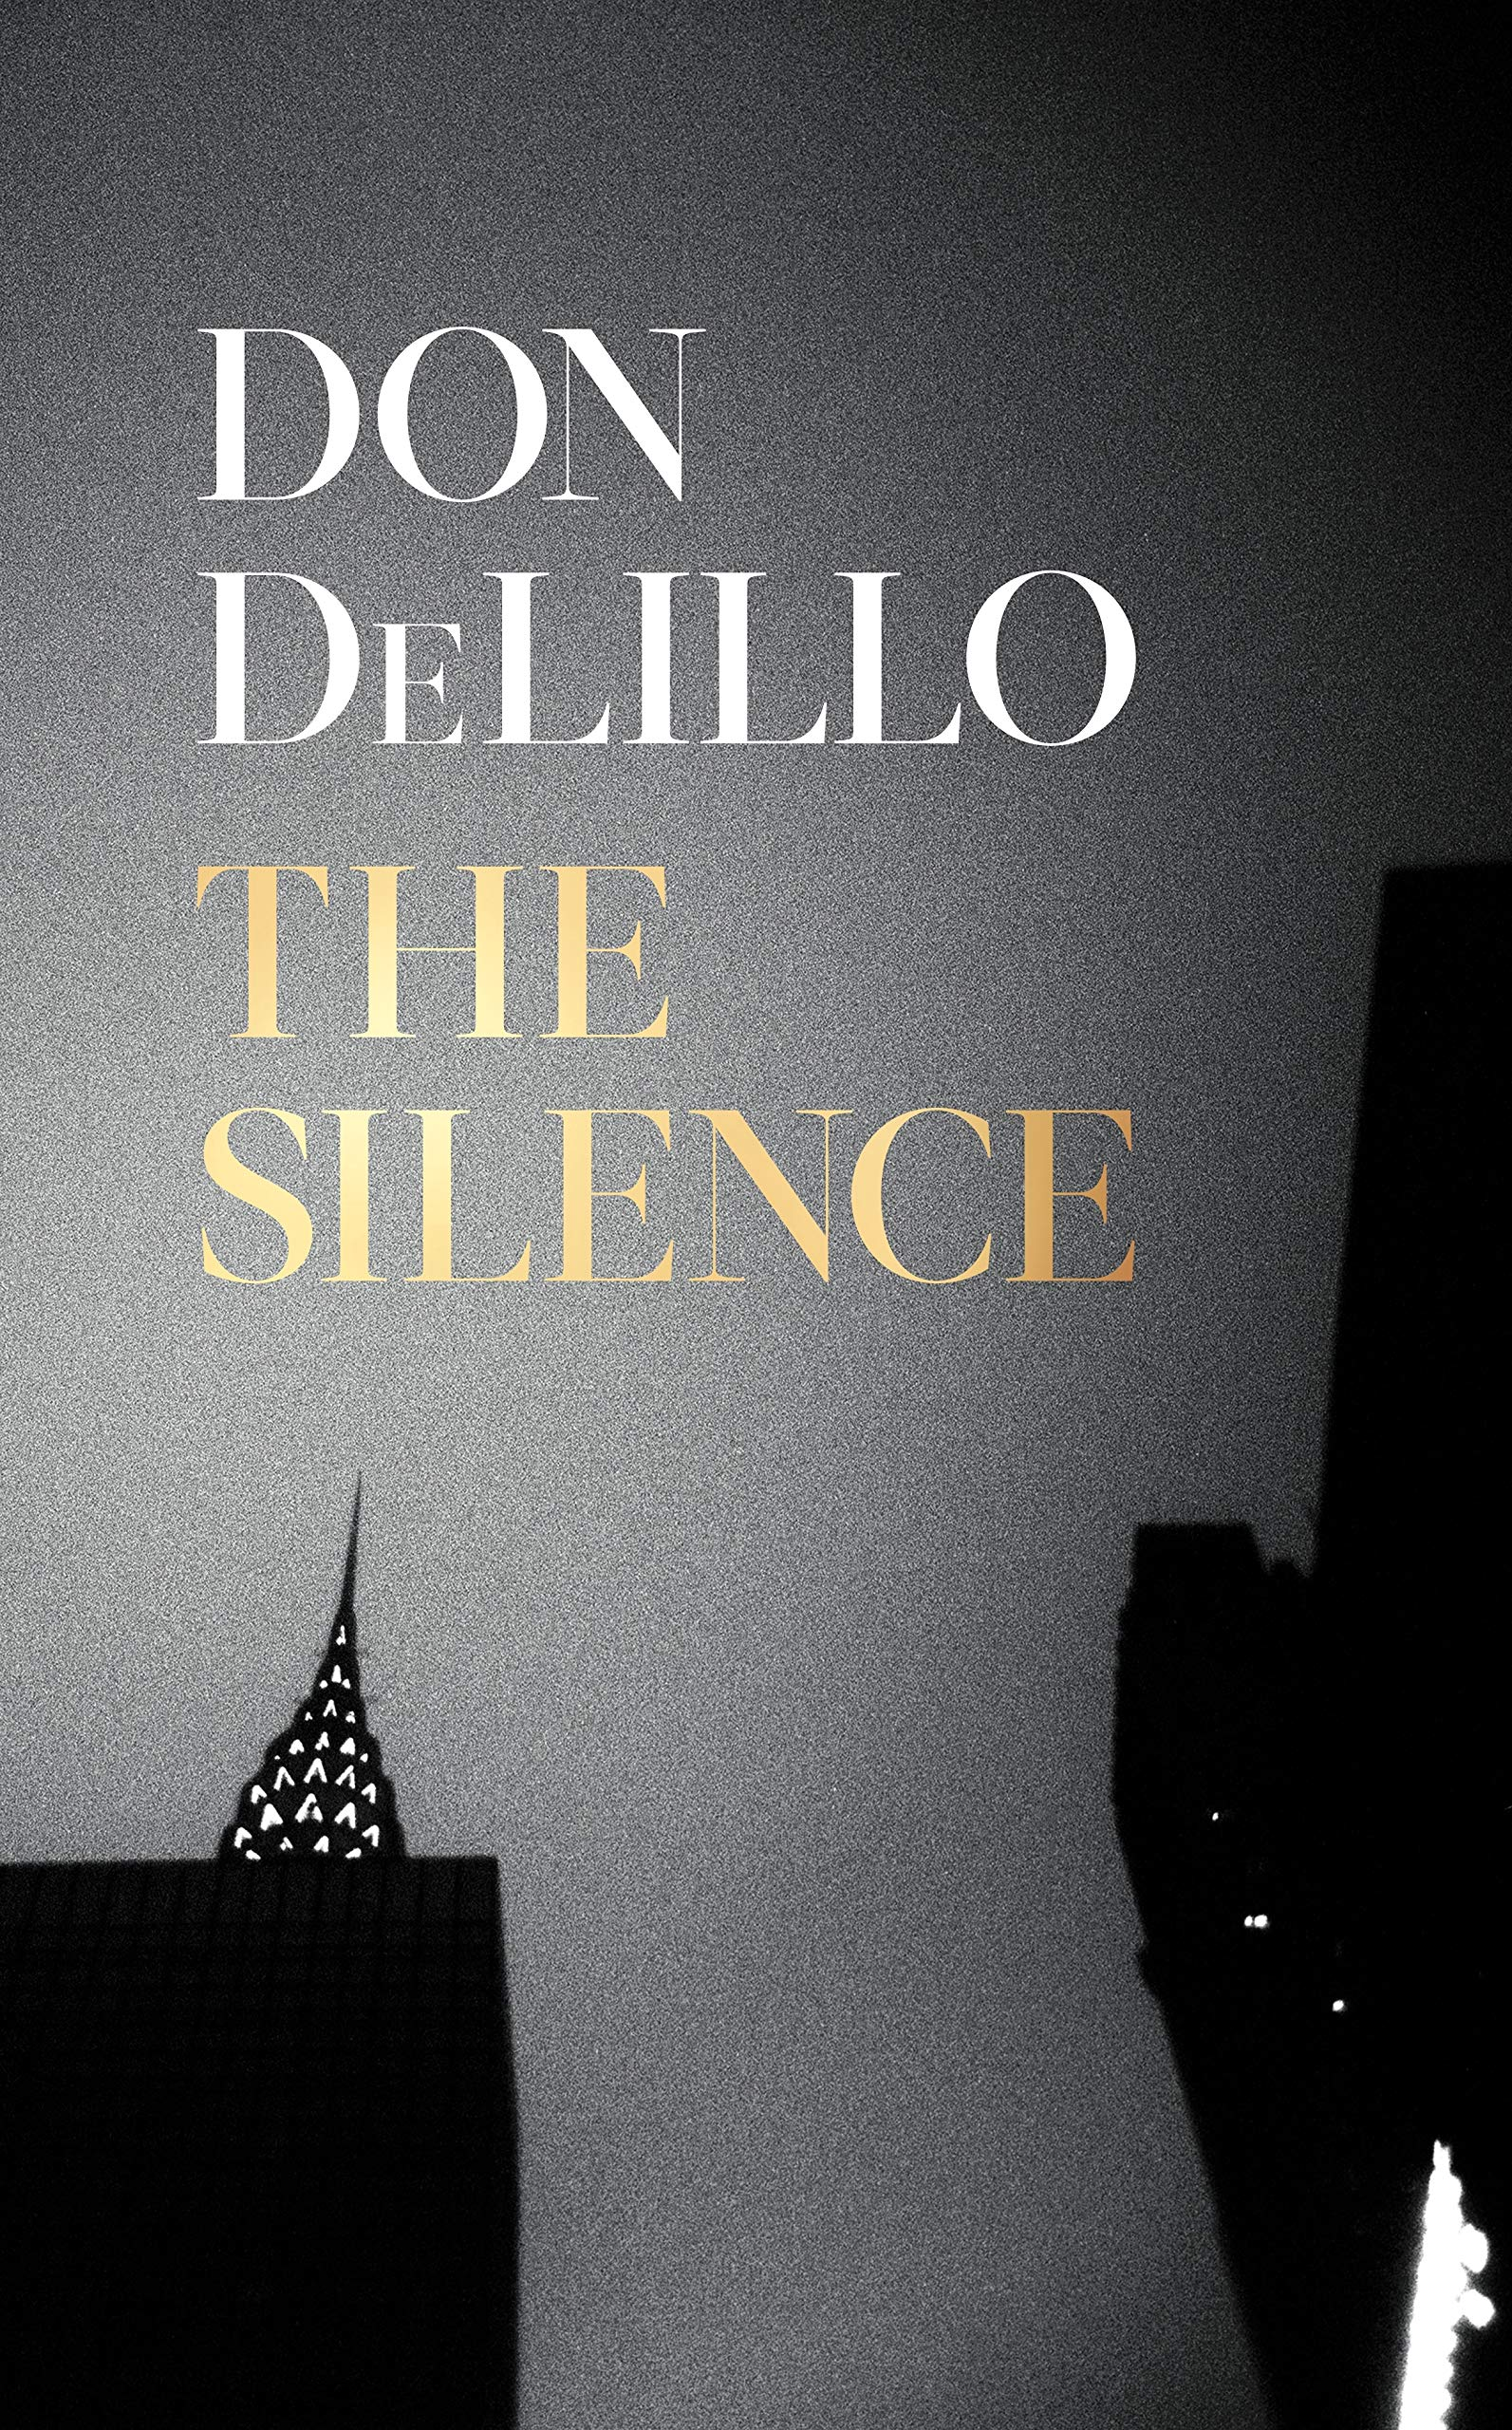 The Arthur Literary Review: Don DeLillo's Deafening Silence